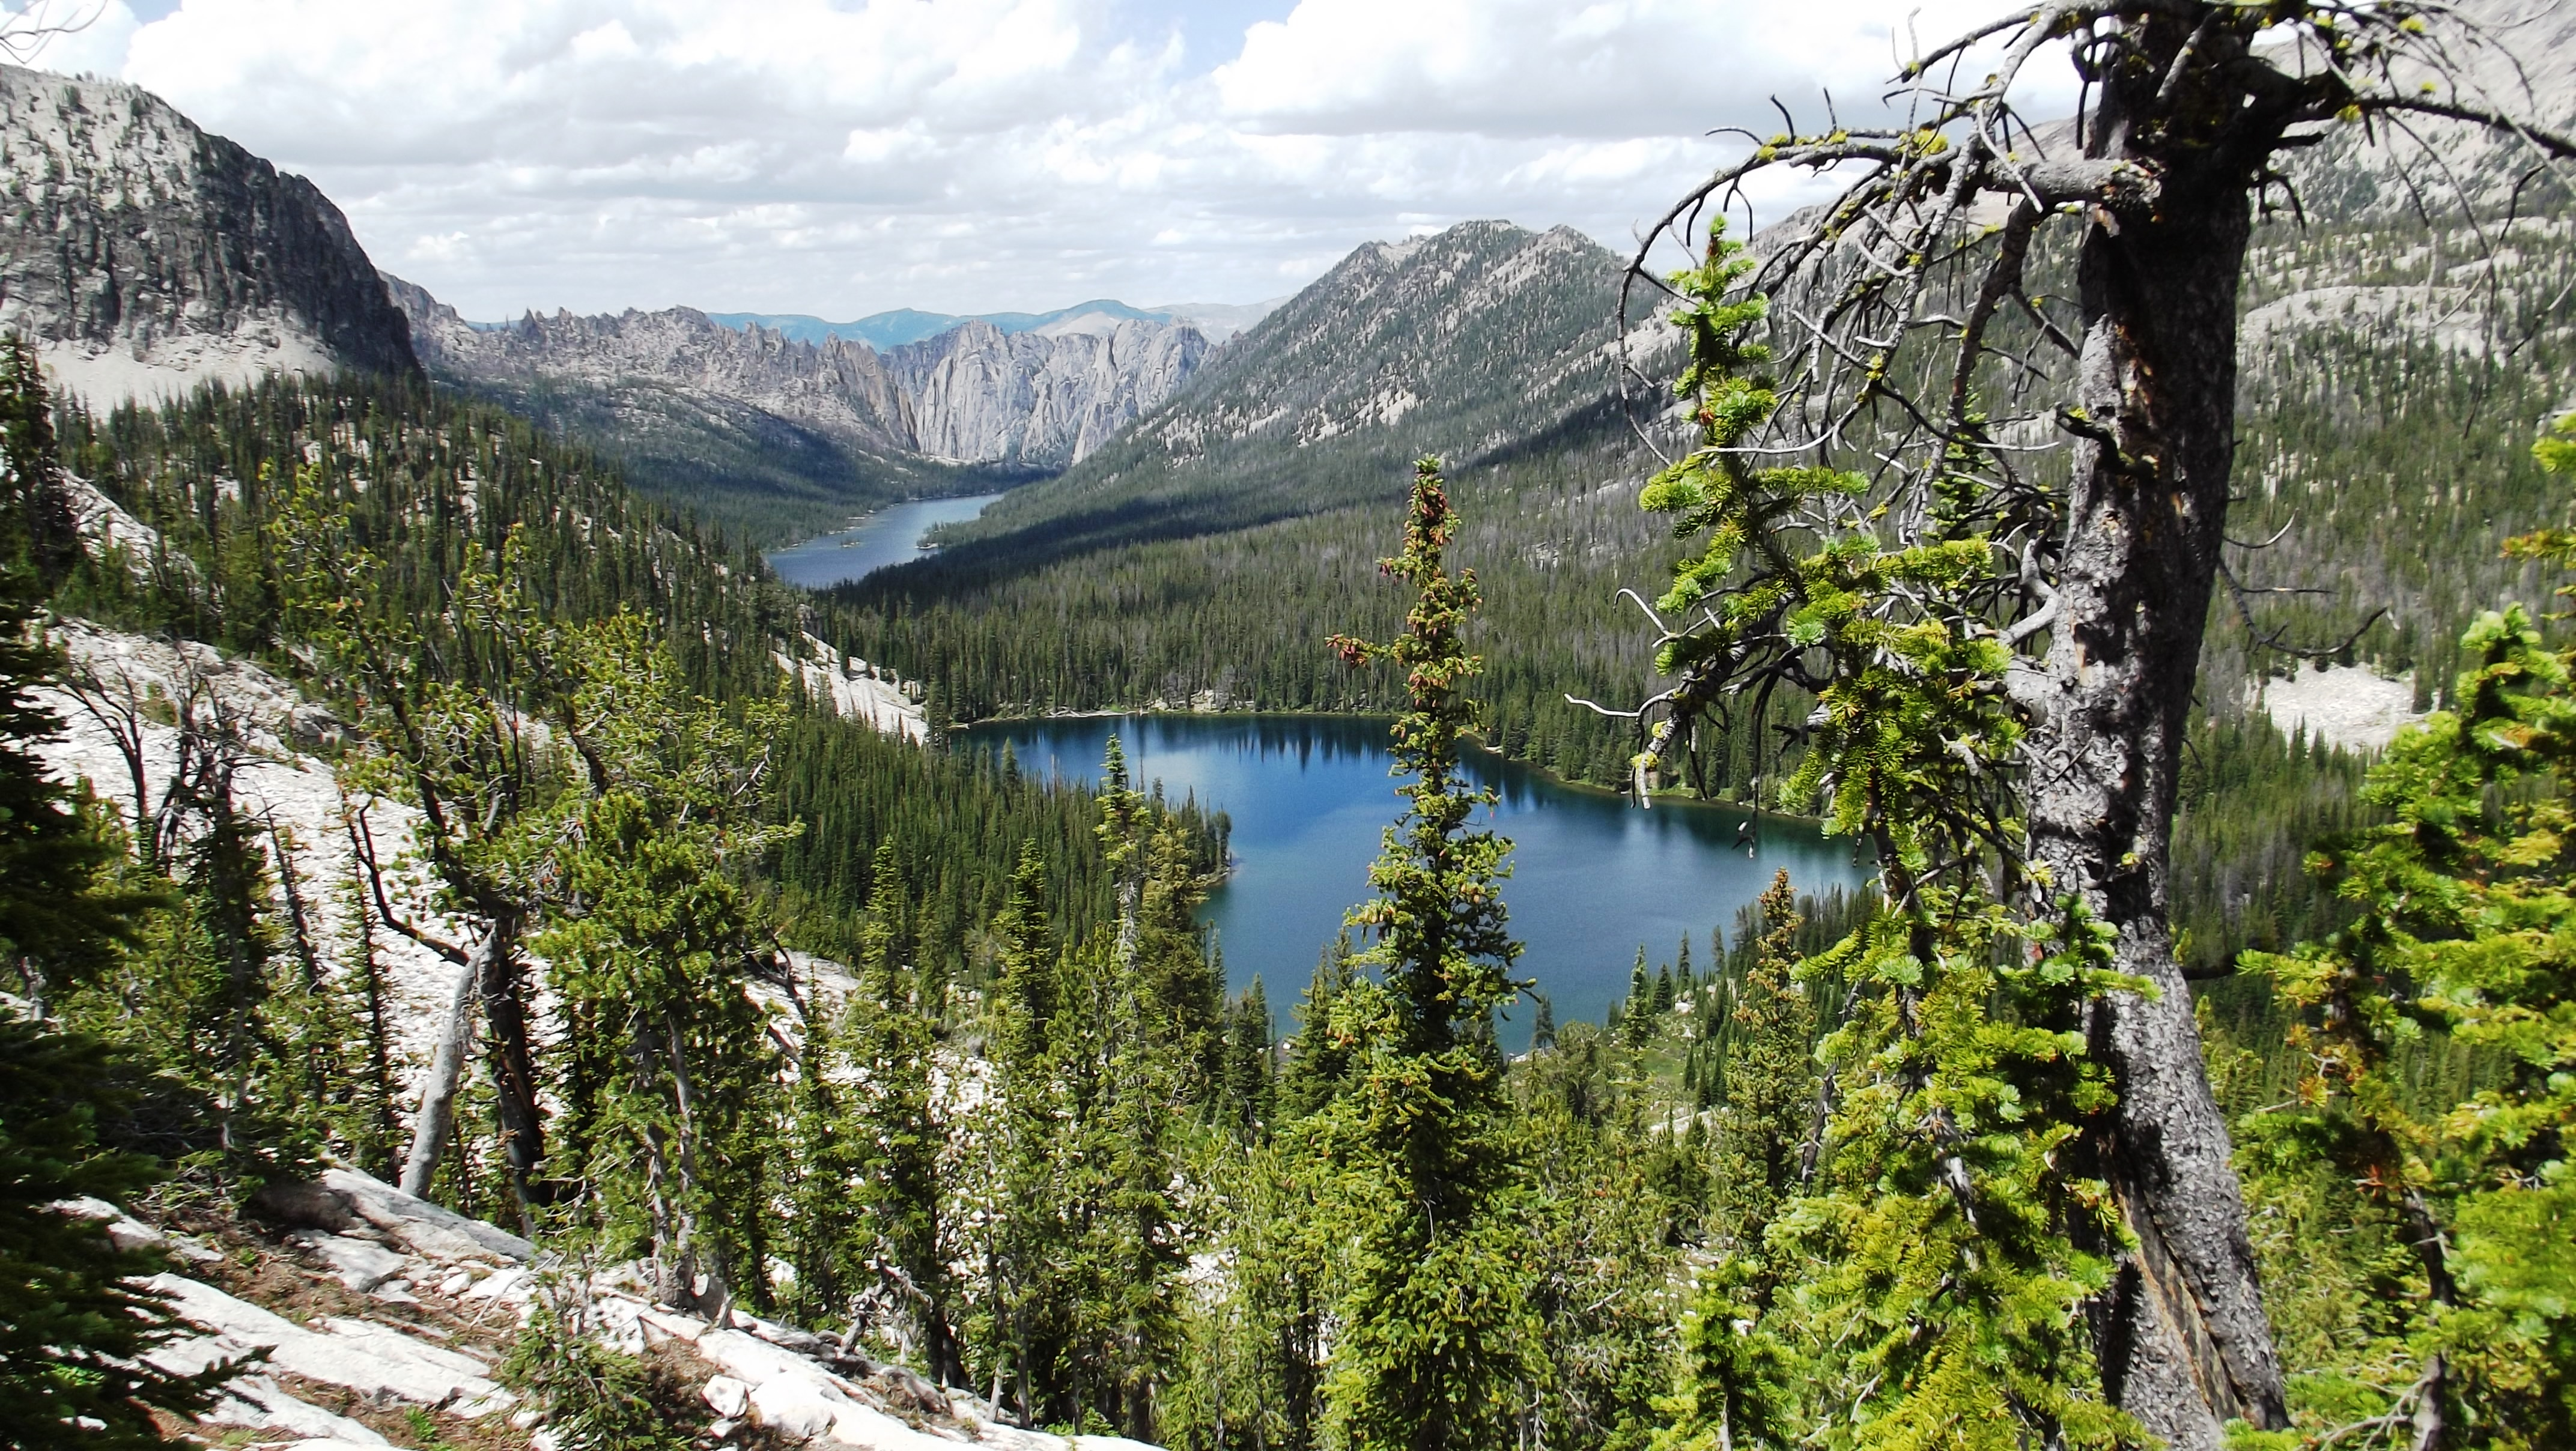 the american wilderness The idea of protecting nature for nature's sake began to gain more recognition in the 1930s with american writers like aldo leopold, calling for a land ethic and urging wilderness protection.